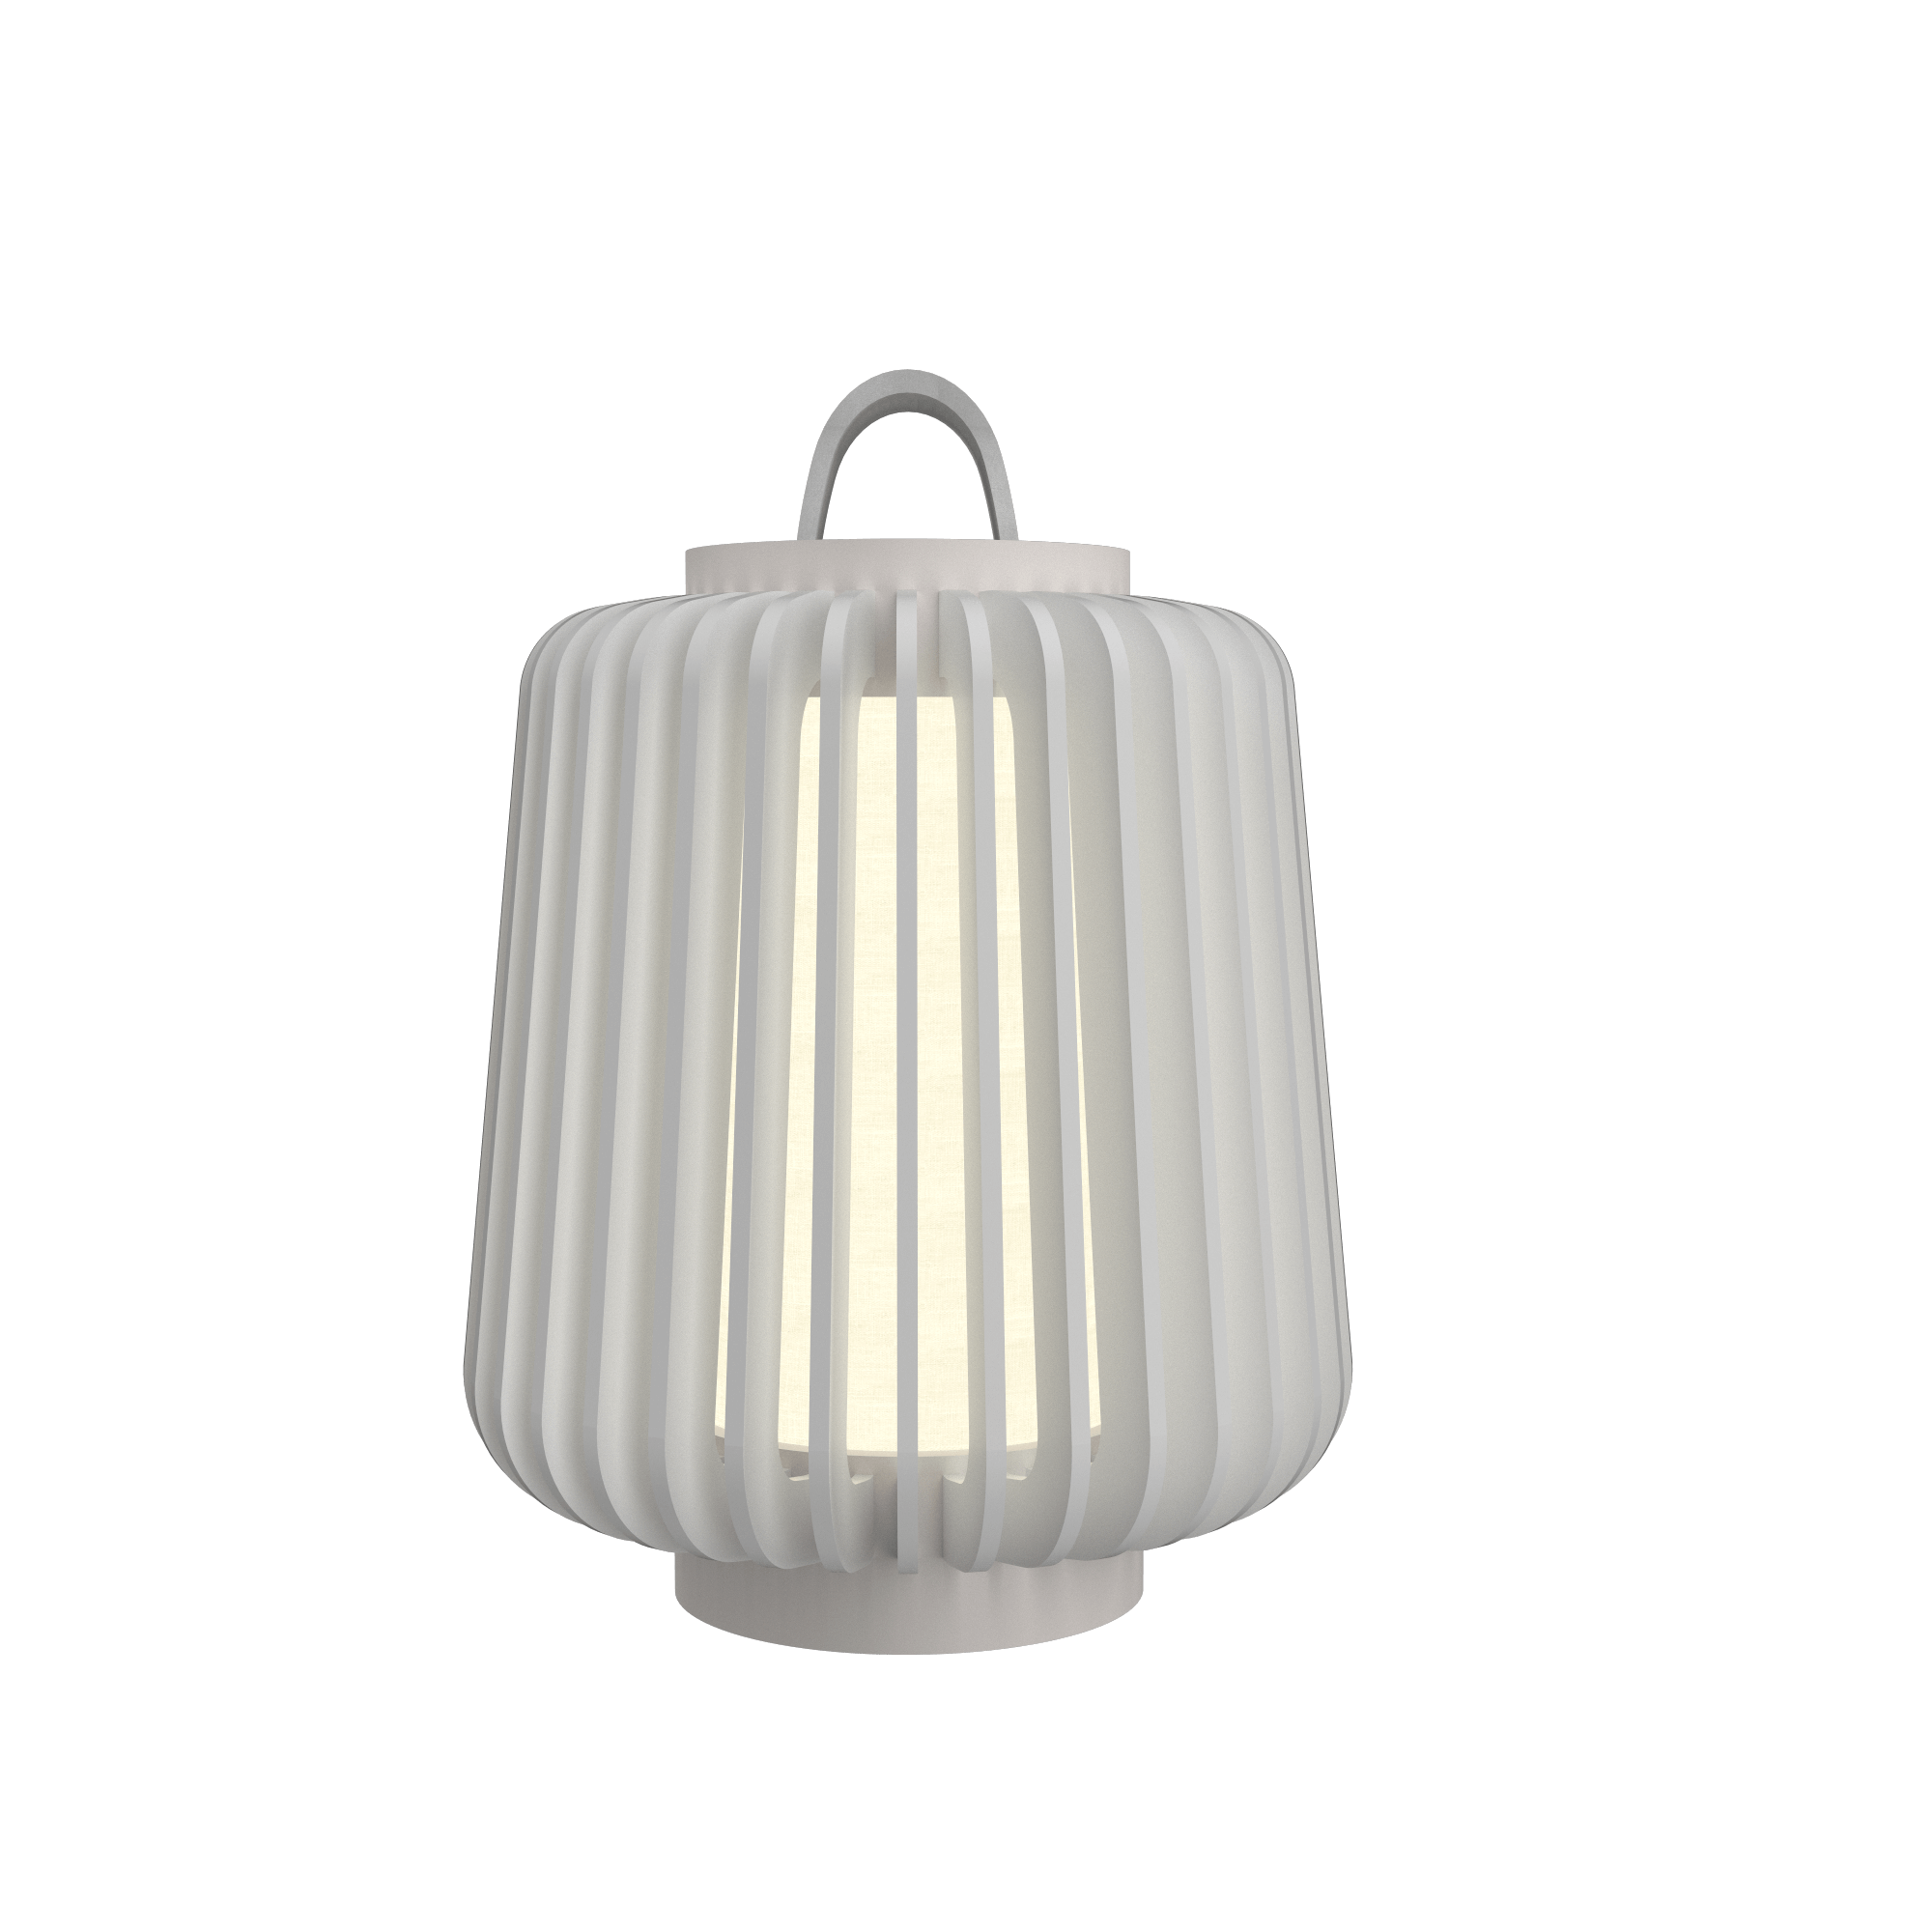 Table Lamp Accord Stecche Di Legno 7059 - Stecche Di Legno Line Accord Lighting | 07. White